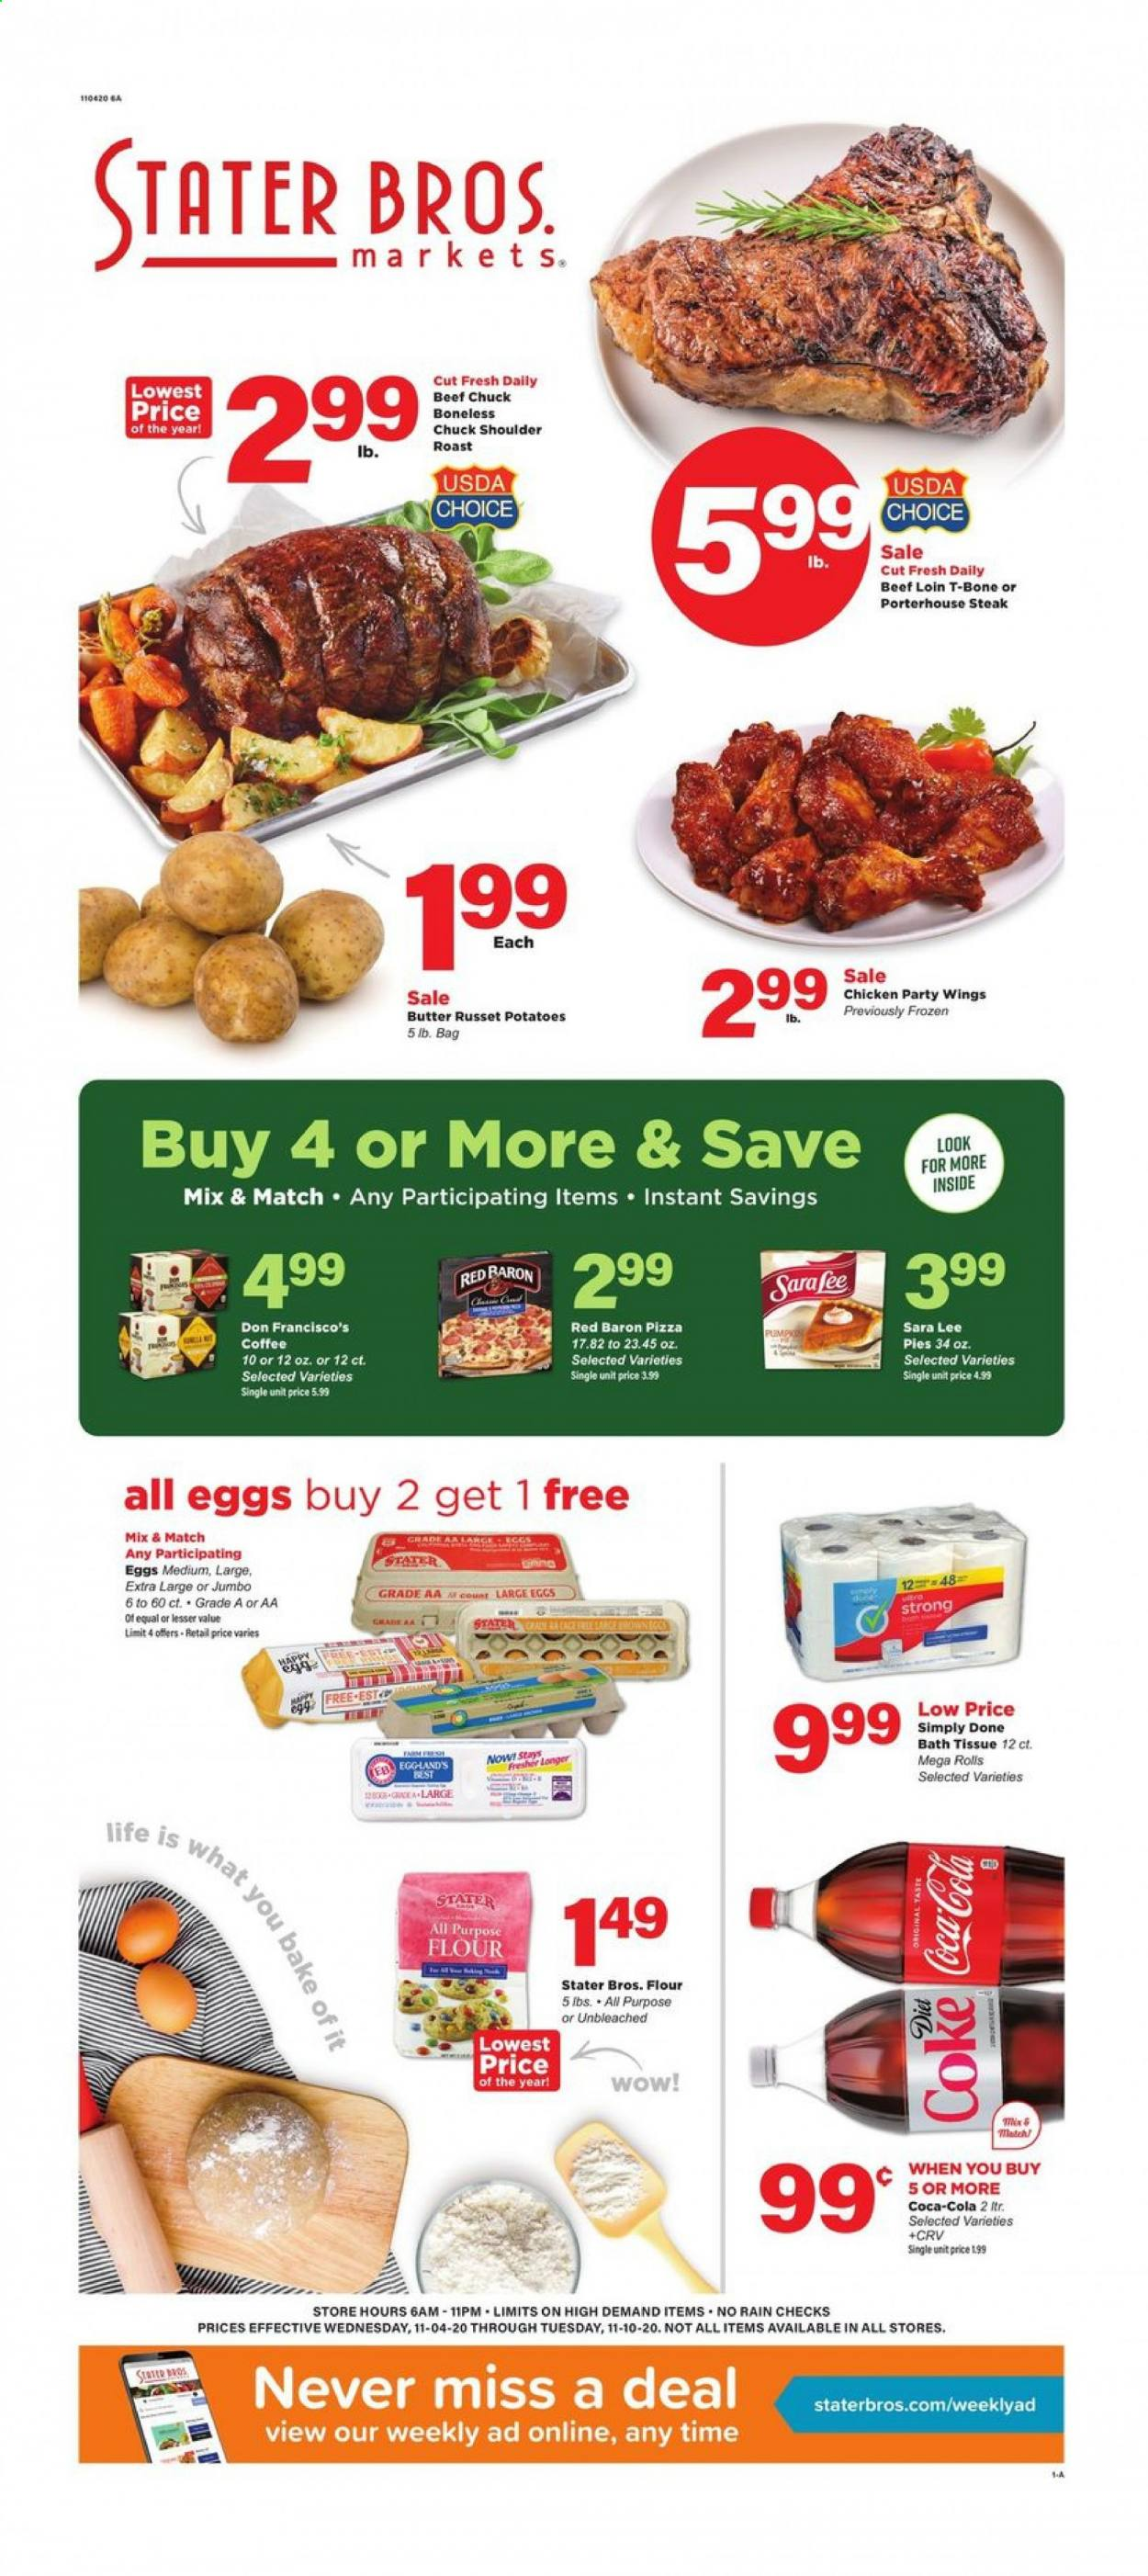 Stater Bros. Flyer - 11.04.2020 - 11.10.2020 - Sales products - rolls, Sara Lee, pizza, large eggs, butter, Red Baron, all purpose flour, flour, Coca-Cola, coffee, chicken, beef meat, t-bone steak, steak, bath tissue. Page 1.